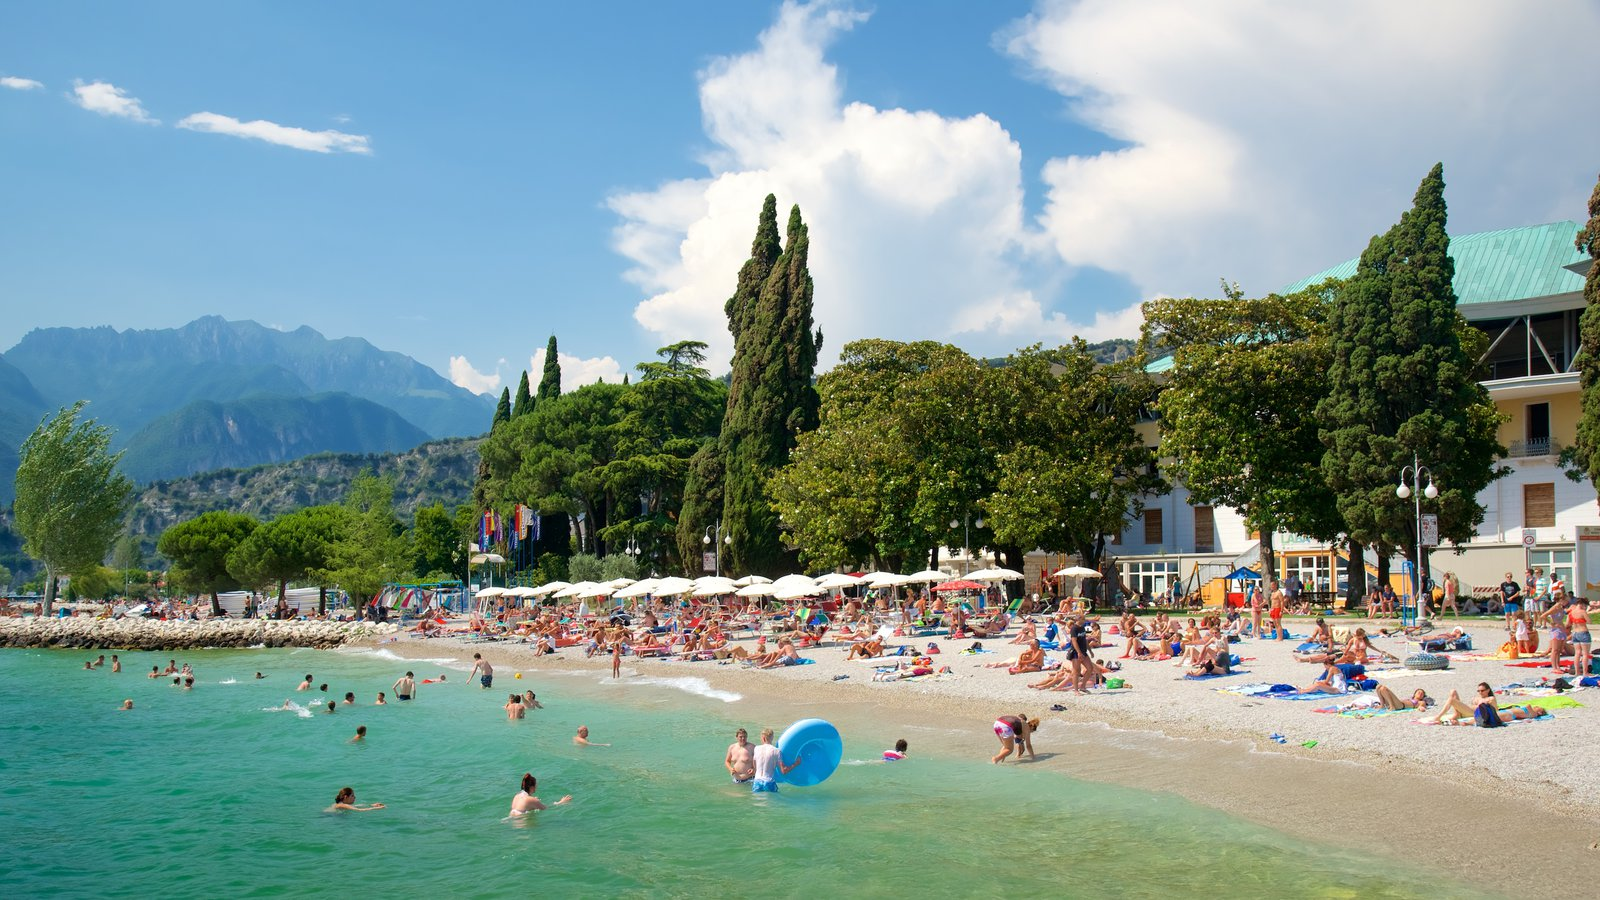 Nago-Torbole which includes a coastal town, a beach and swimming